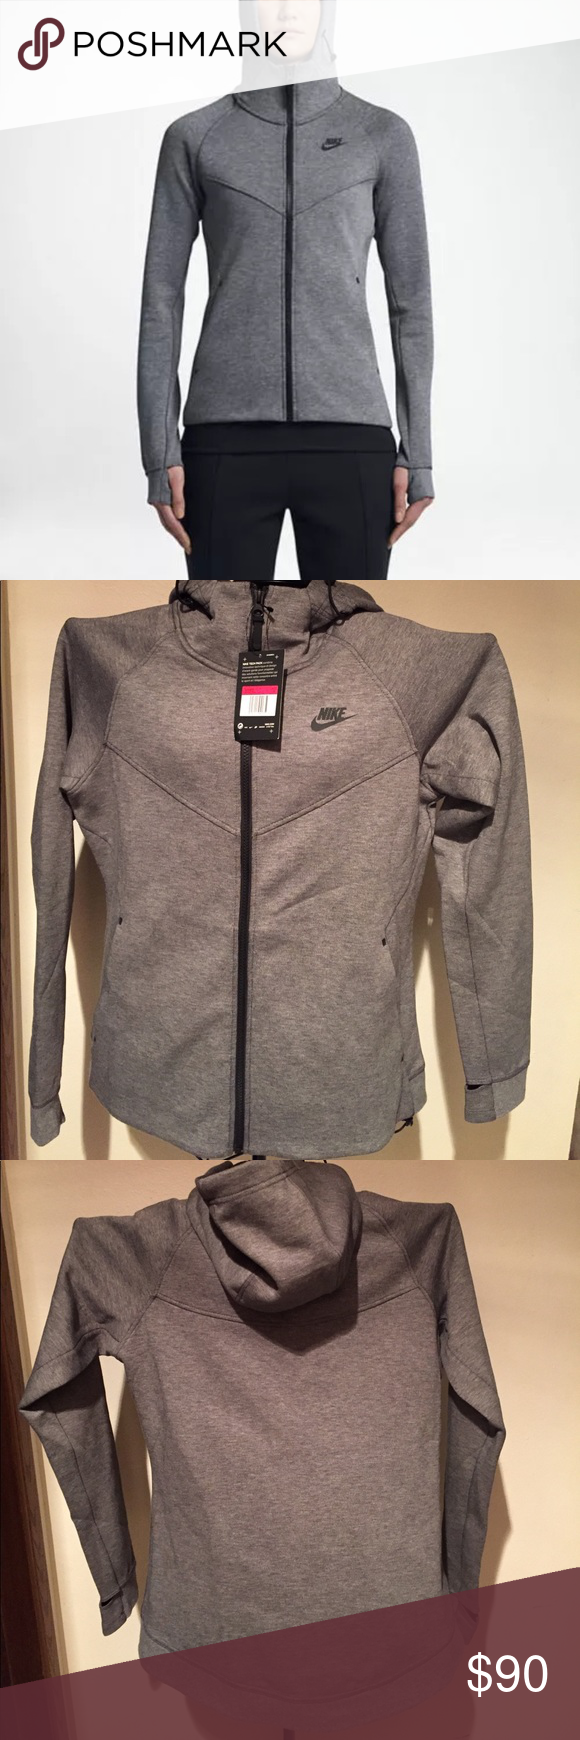 b05c42de2201 Nike tech jacket in grey with black logo NWT! Beautiful and straight up  dope!